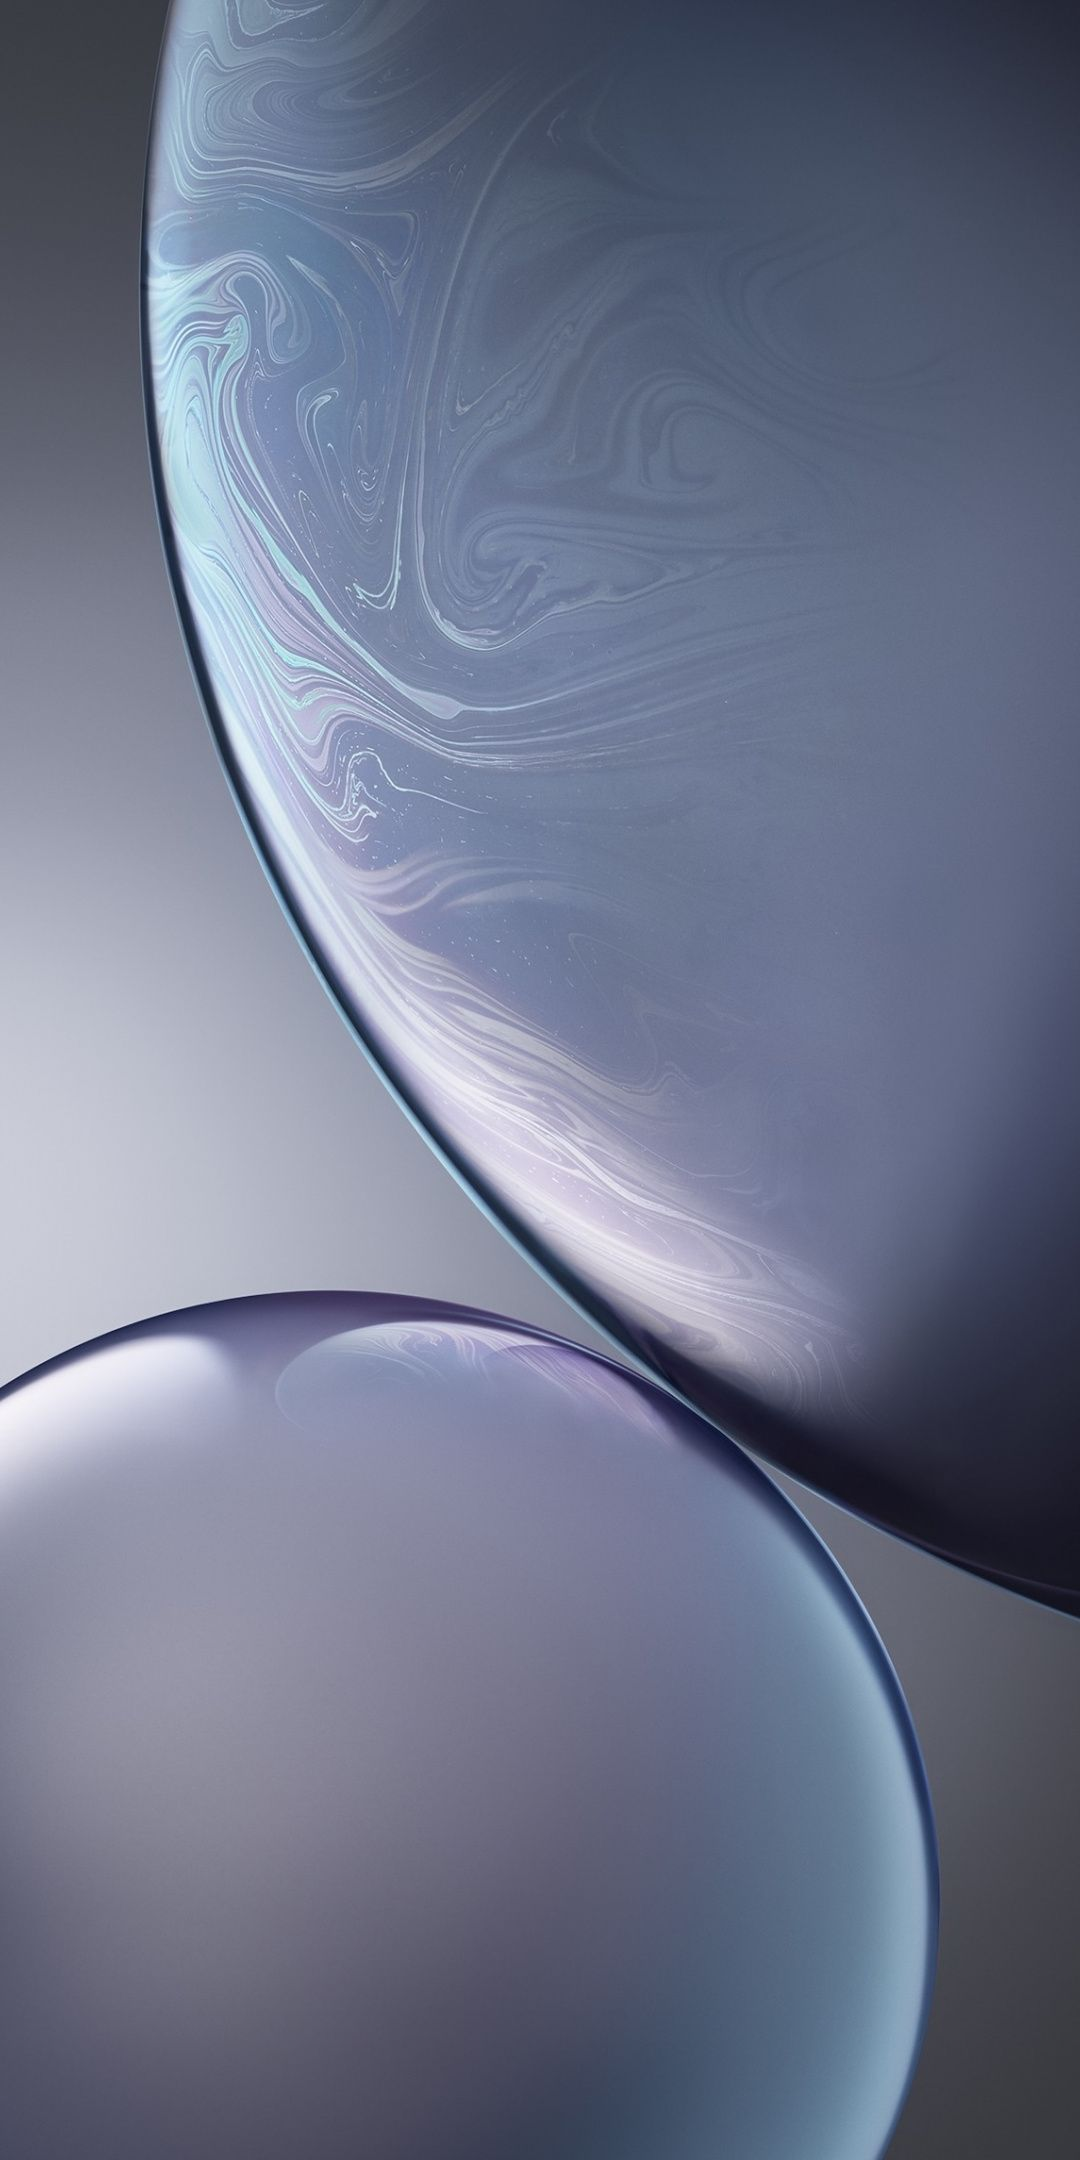 Bubbles, gray, iPhone XR, iOS 12, surface, 1080x2160 wallpaper | Abstract, digital art Wallpapers